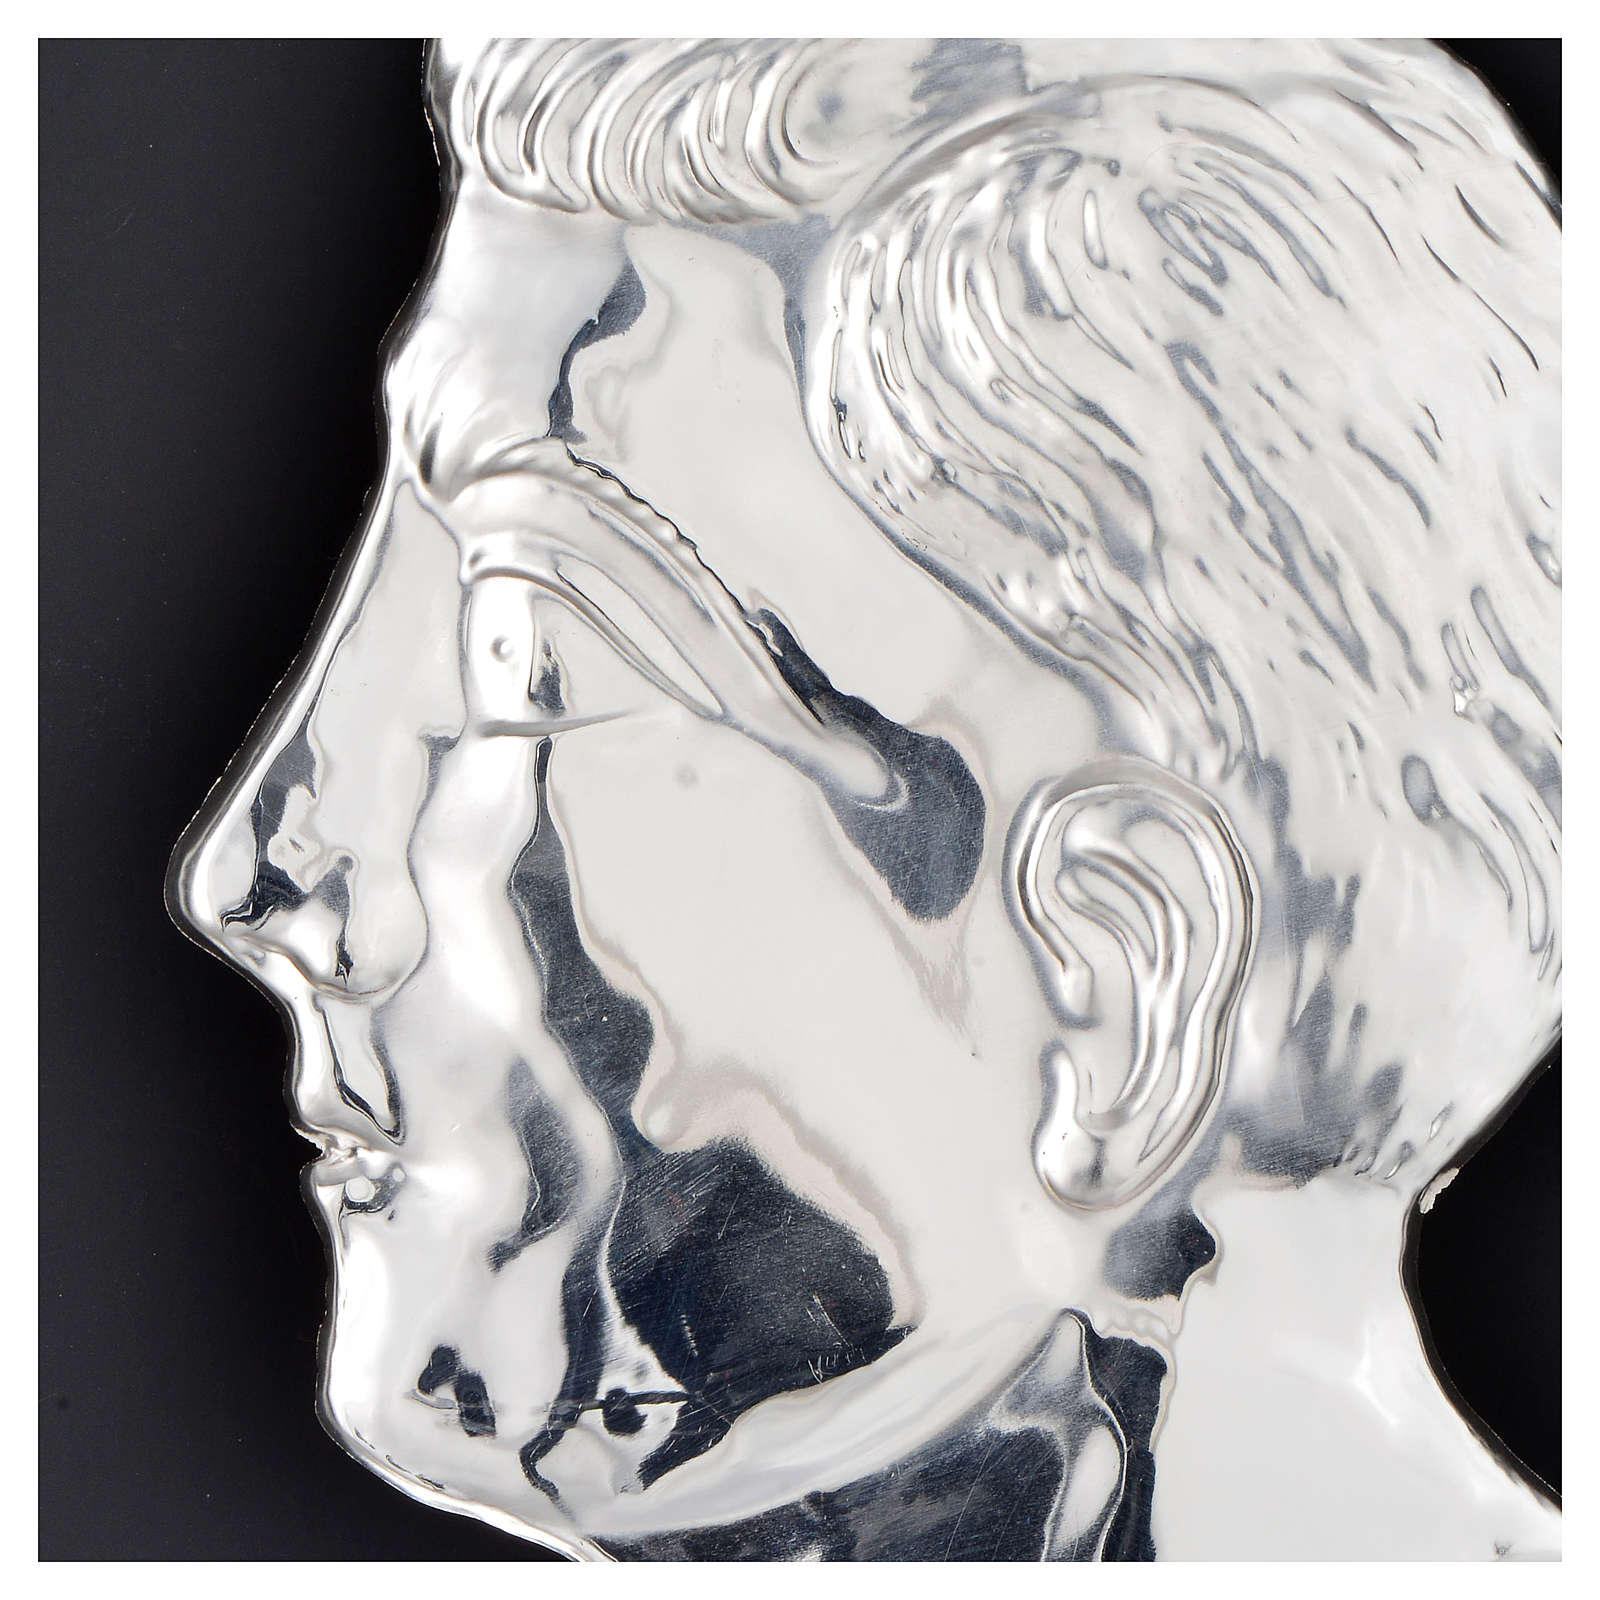 Ex-voto, man head in sterling silver or metal, 13cm 3